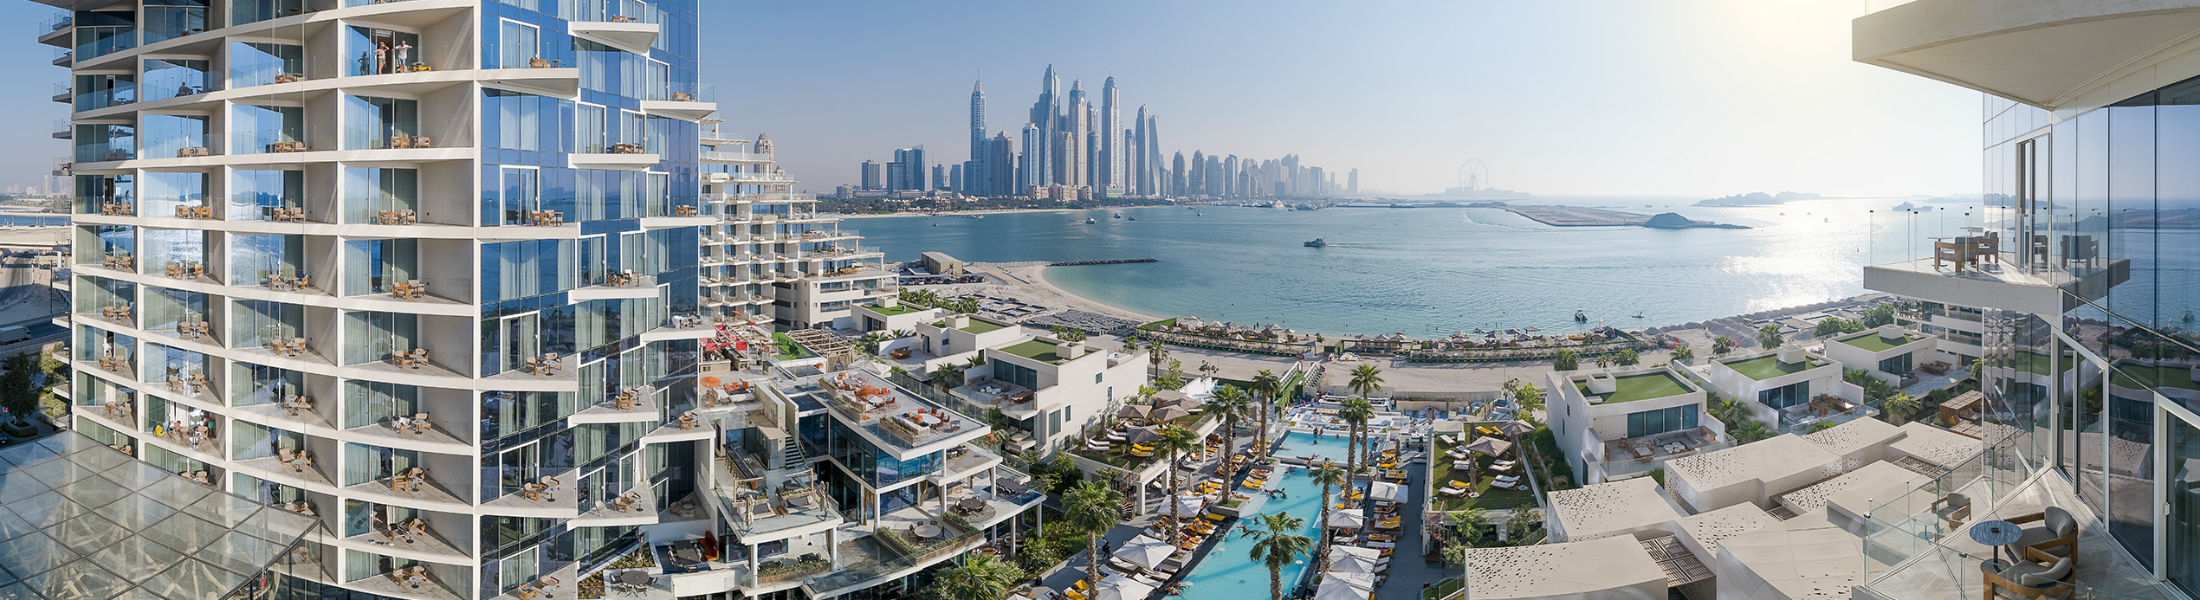 View from the Five Palm Jumeirah of Dubai Marina